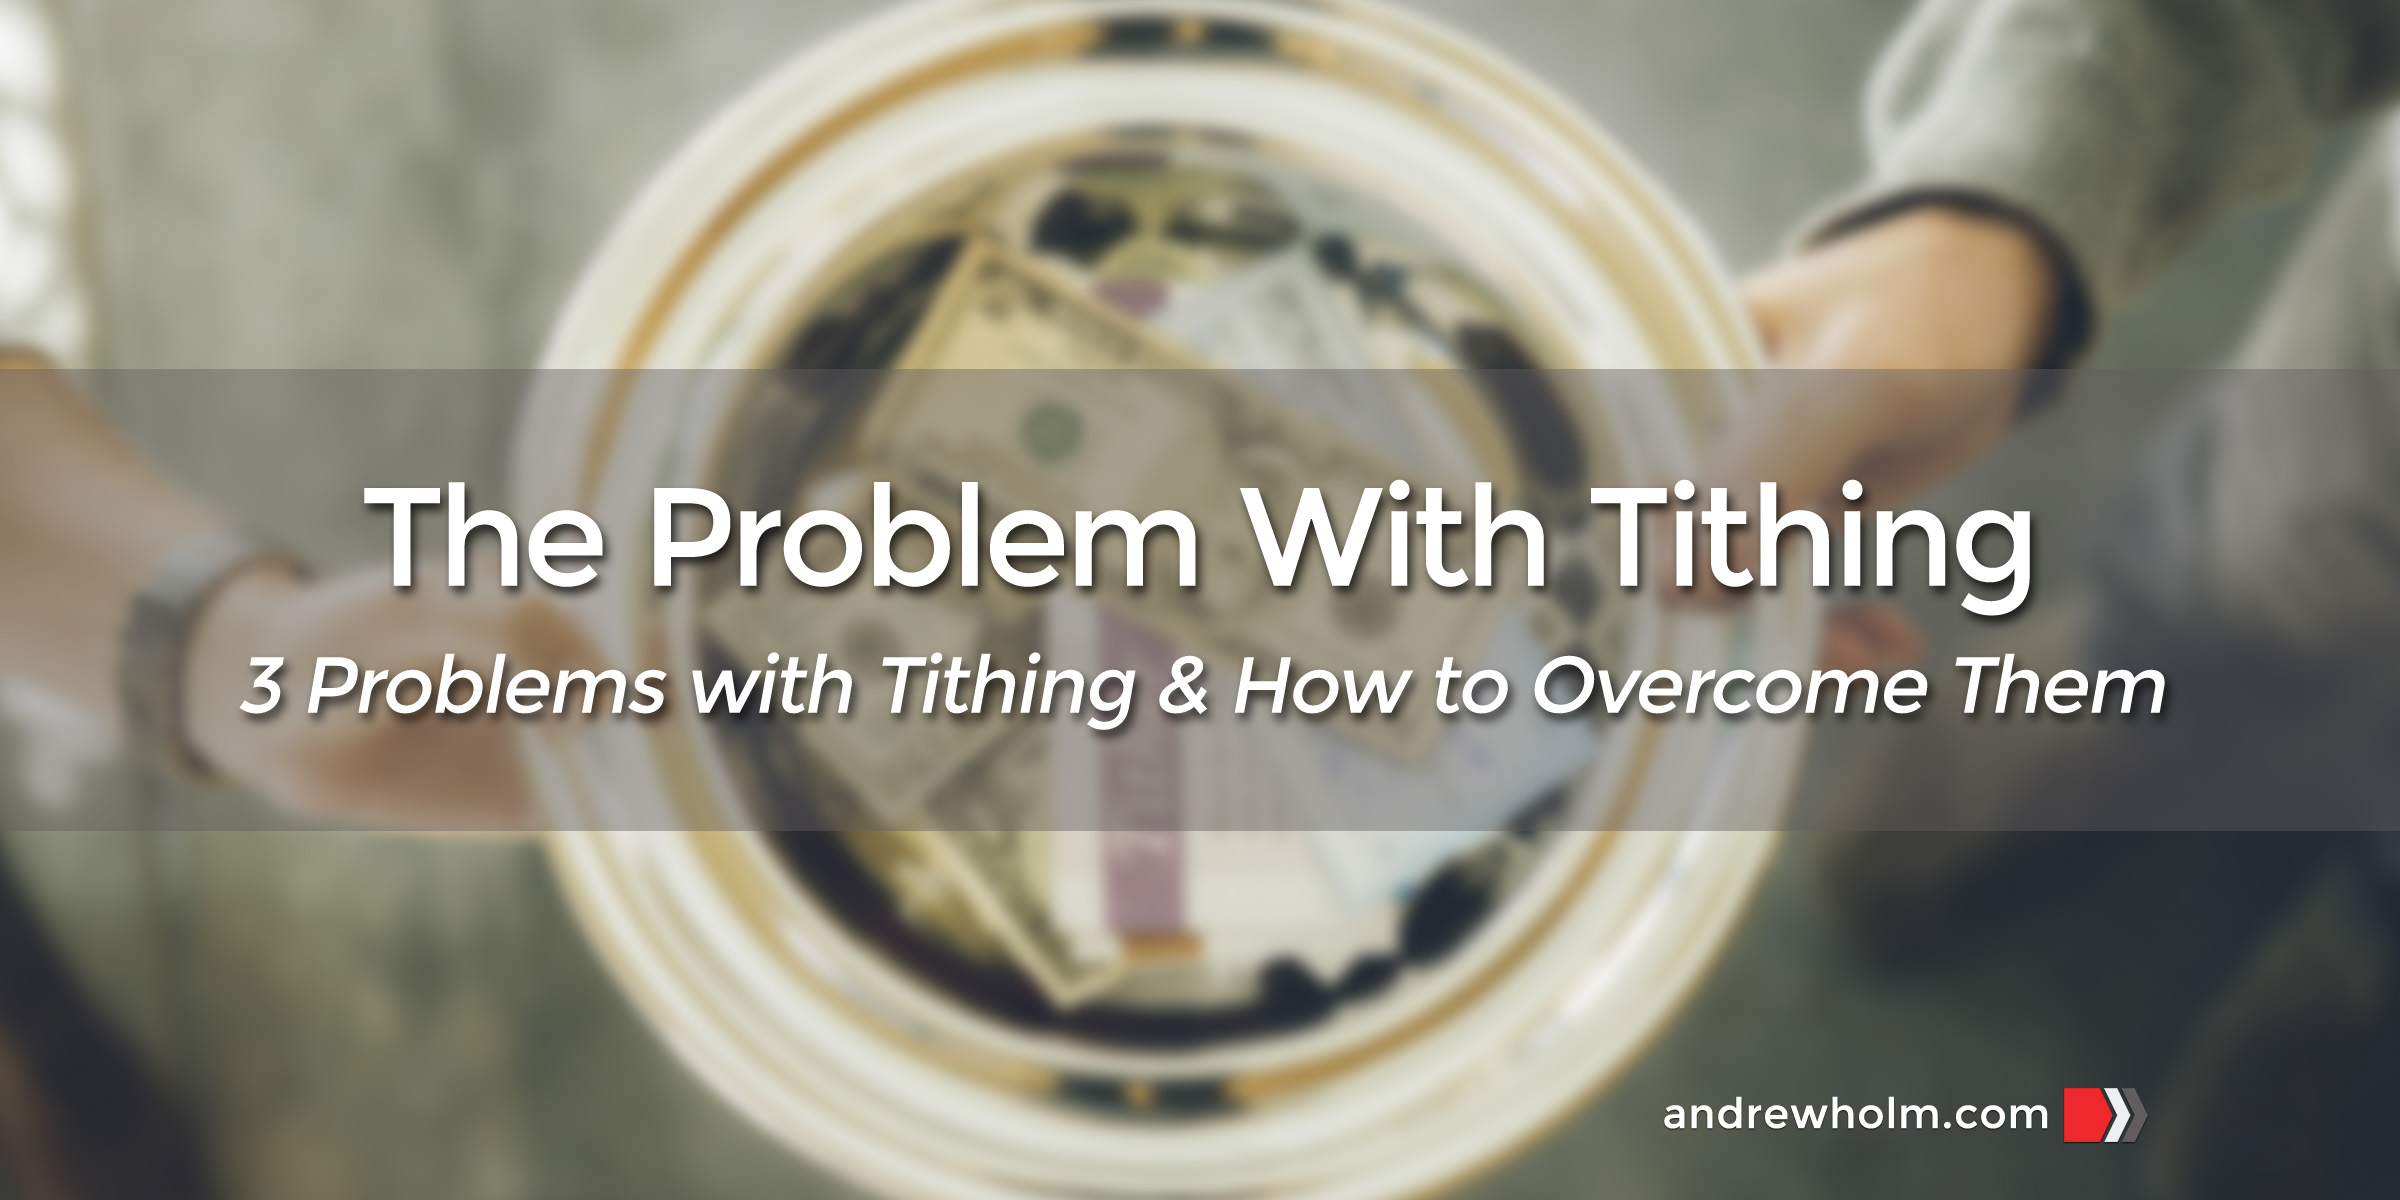 The Problem With Tithing